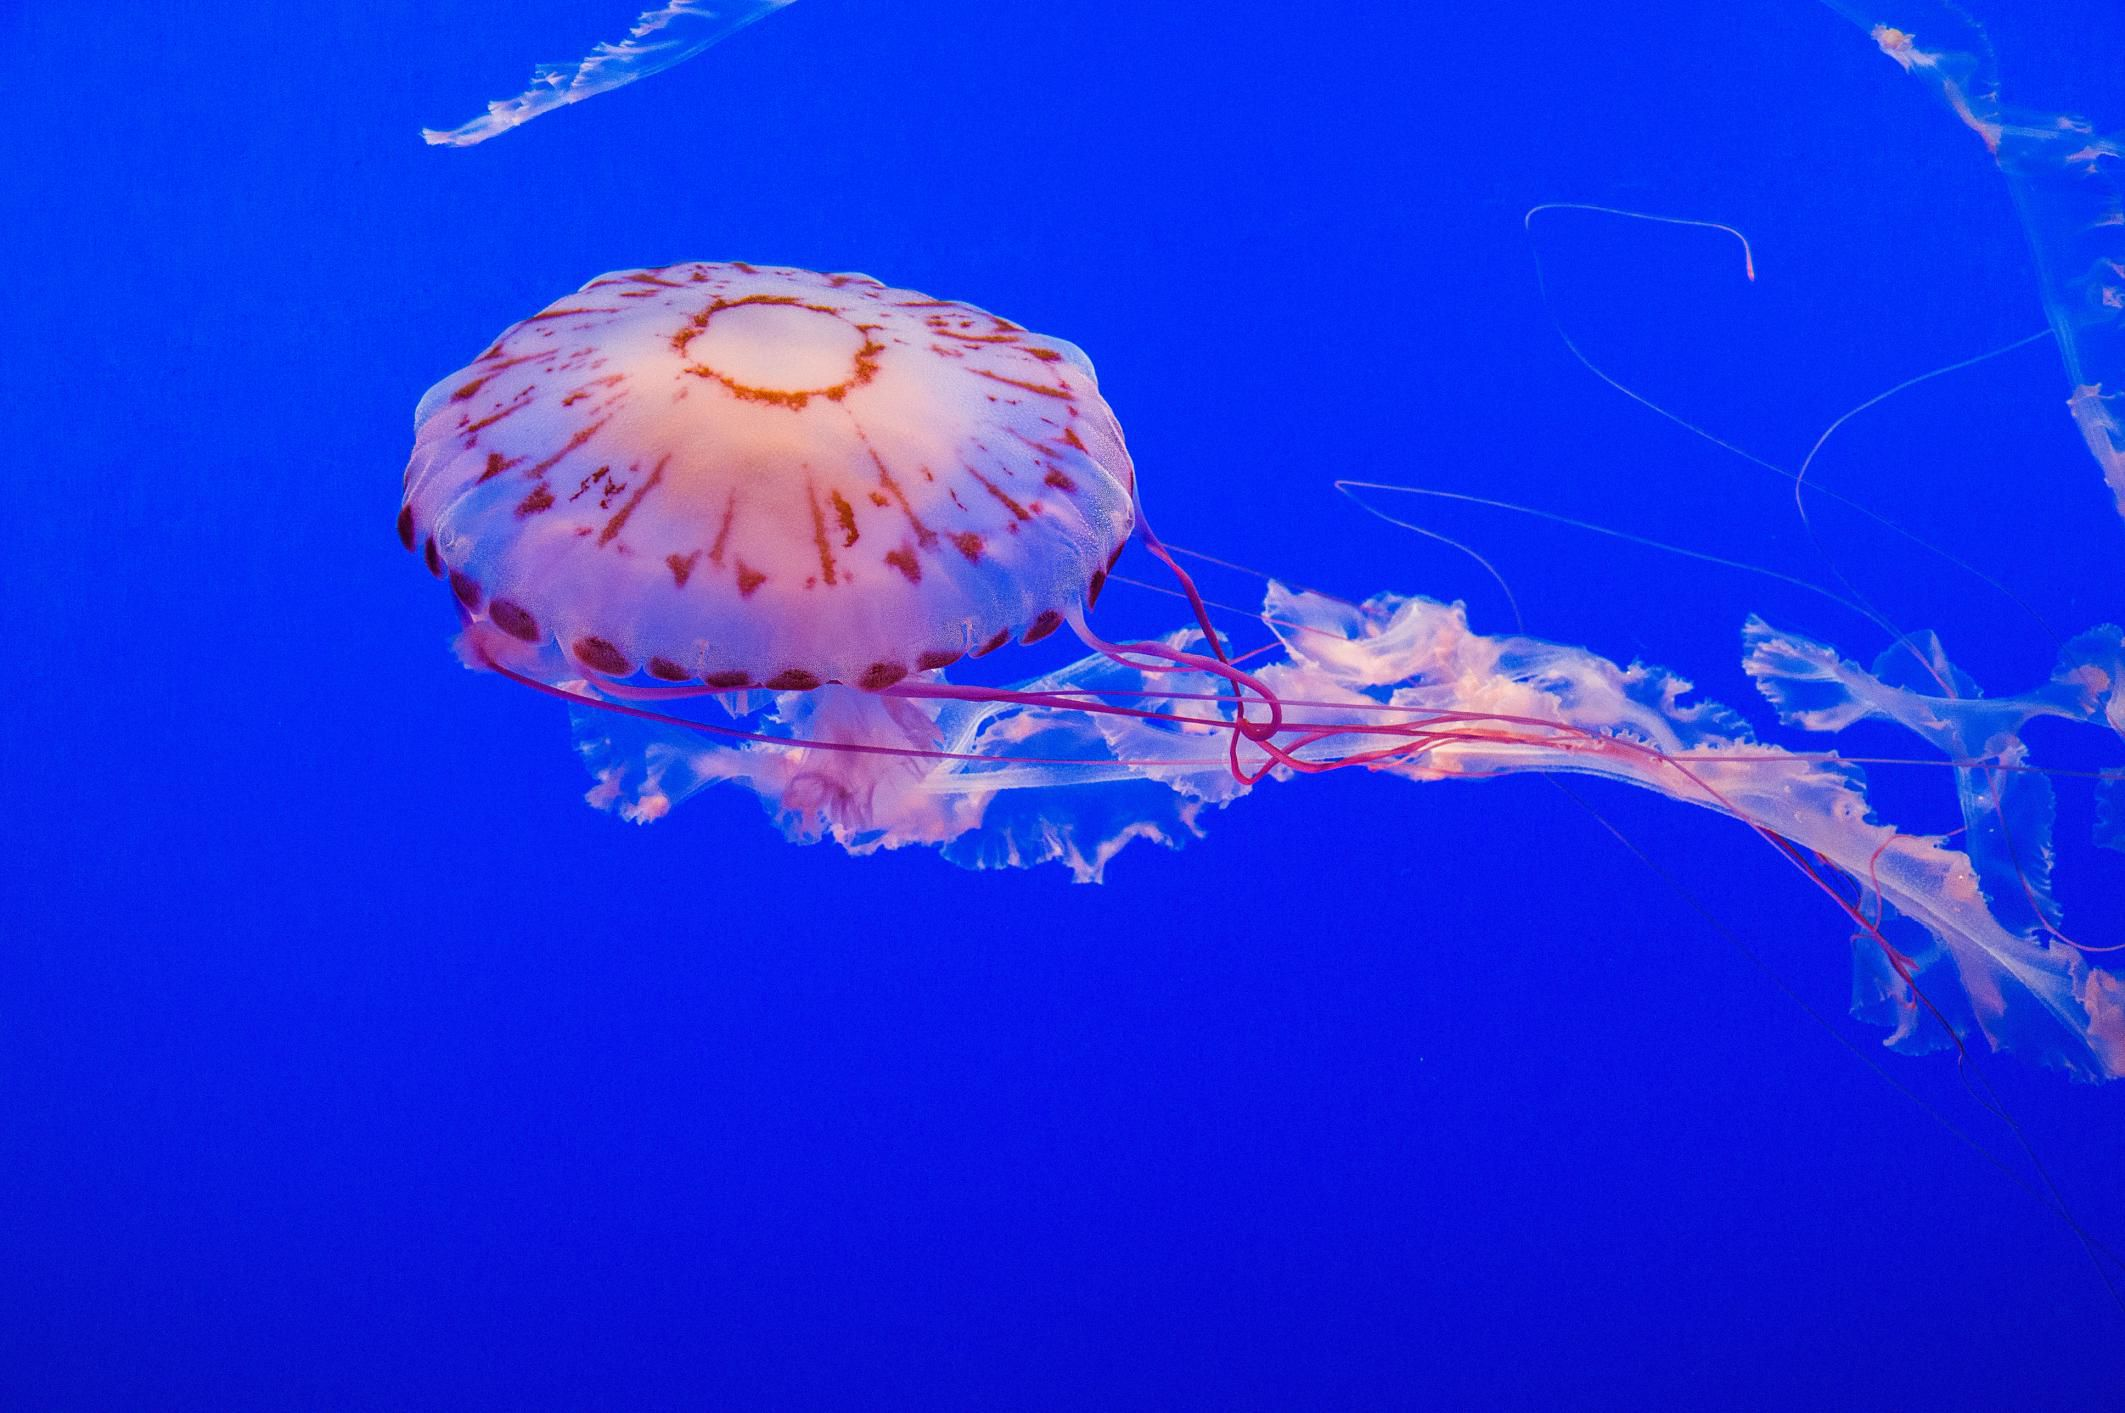 Cnidaria Facts and Information